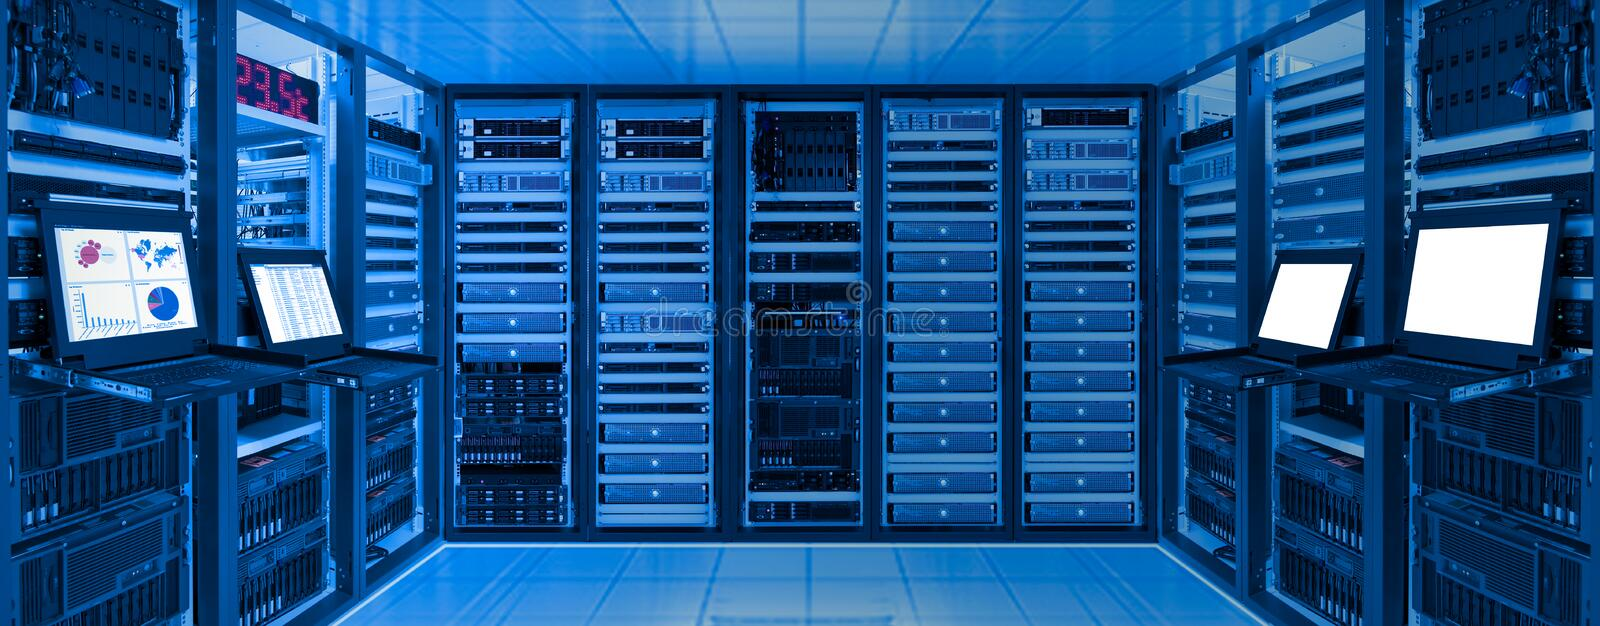 Data center room with server and networking device on rack cabinet stock image